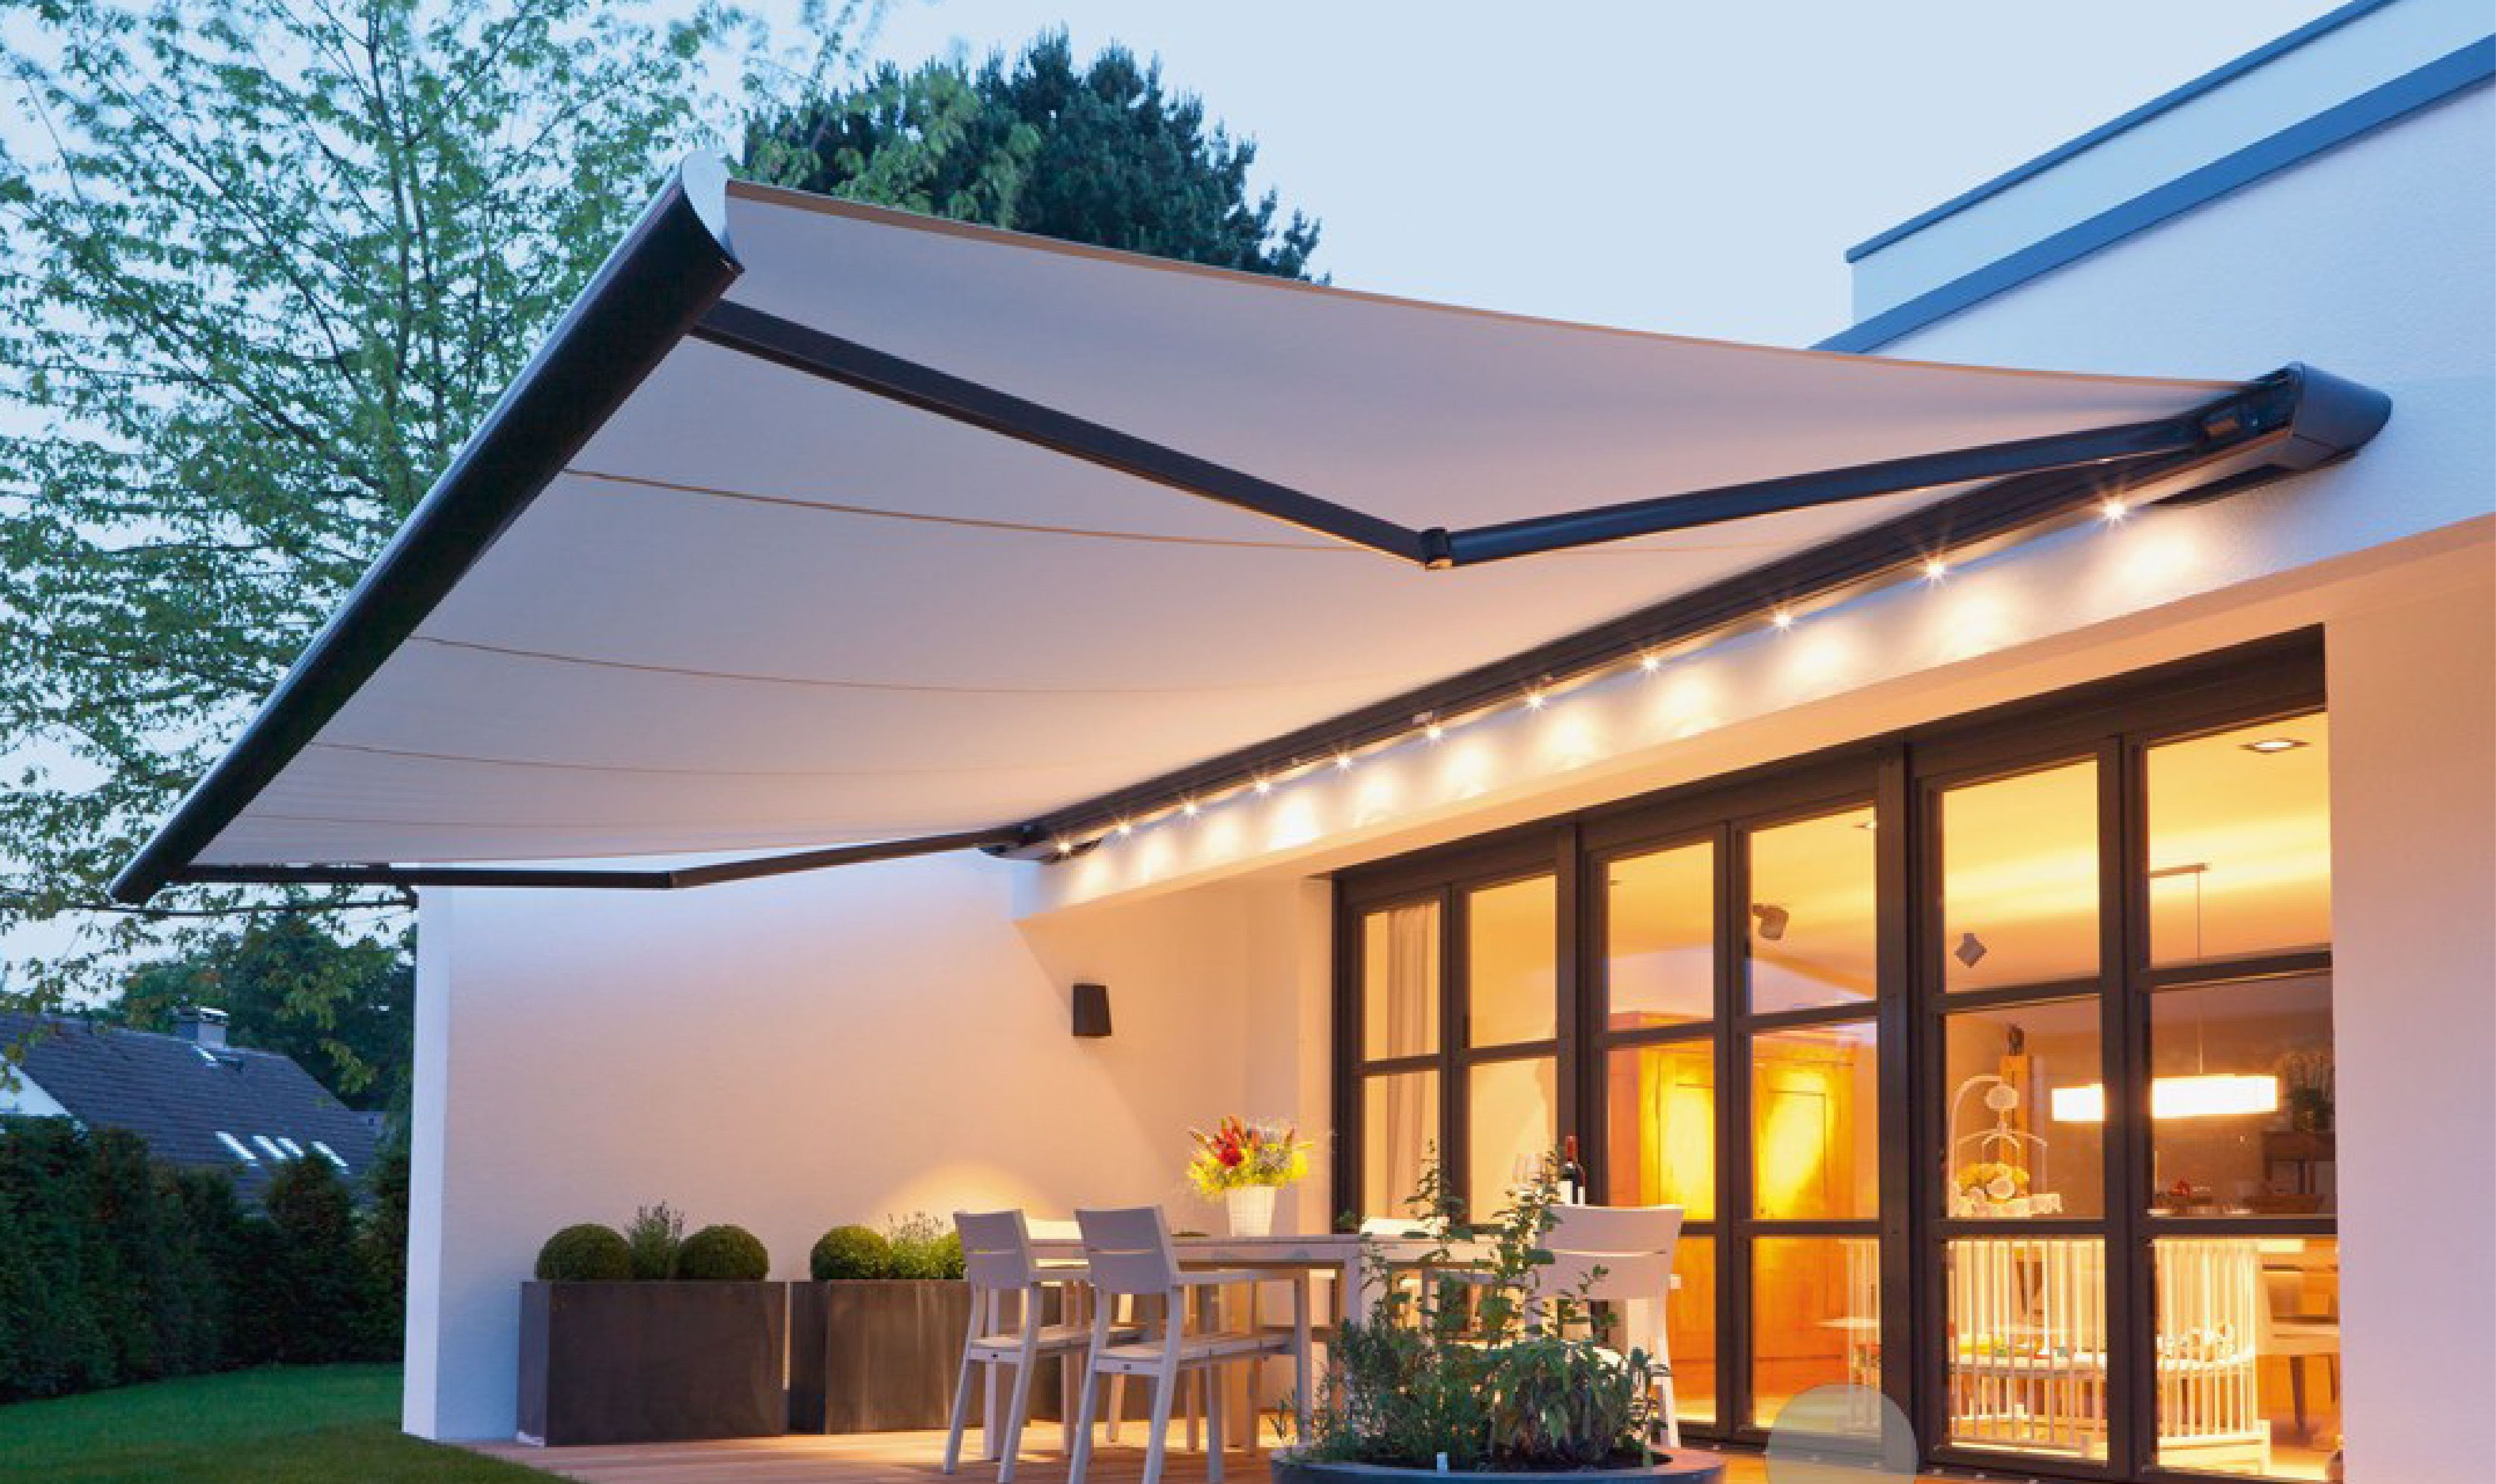 awnings ideas awning parts aleko reviews decks pleasant for of retractable patio shade